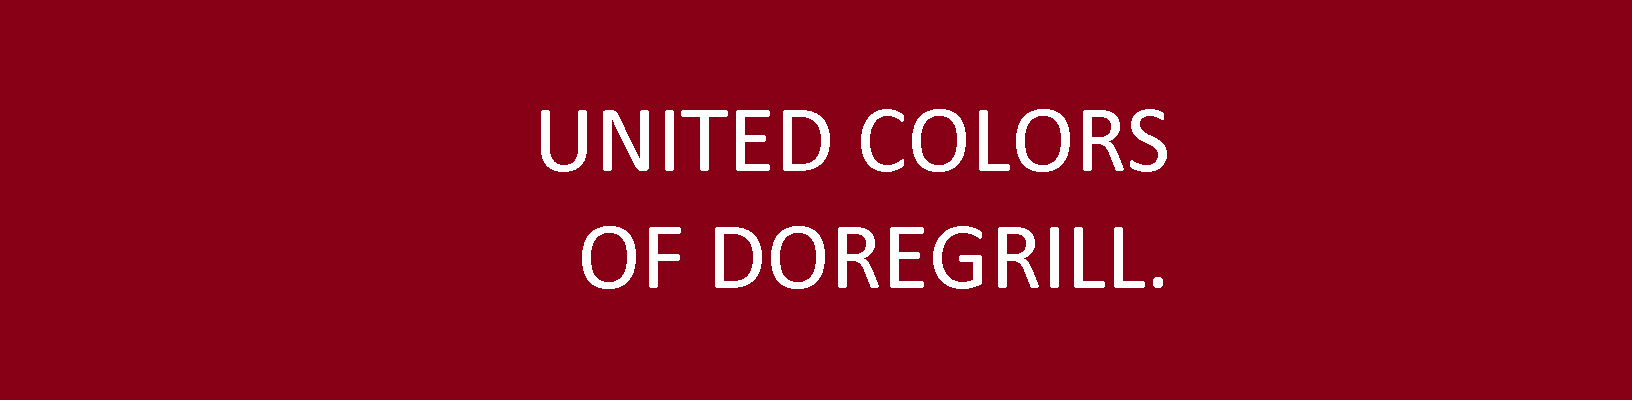 UNITED COLORS OF DOREGRILL